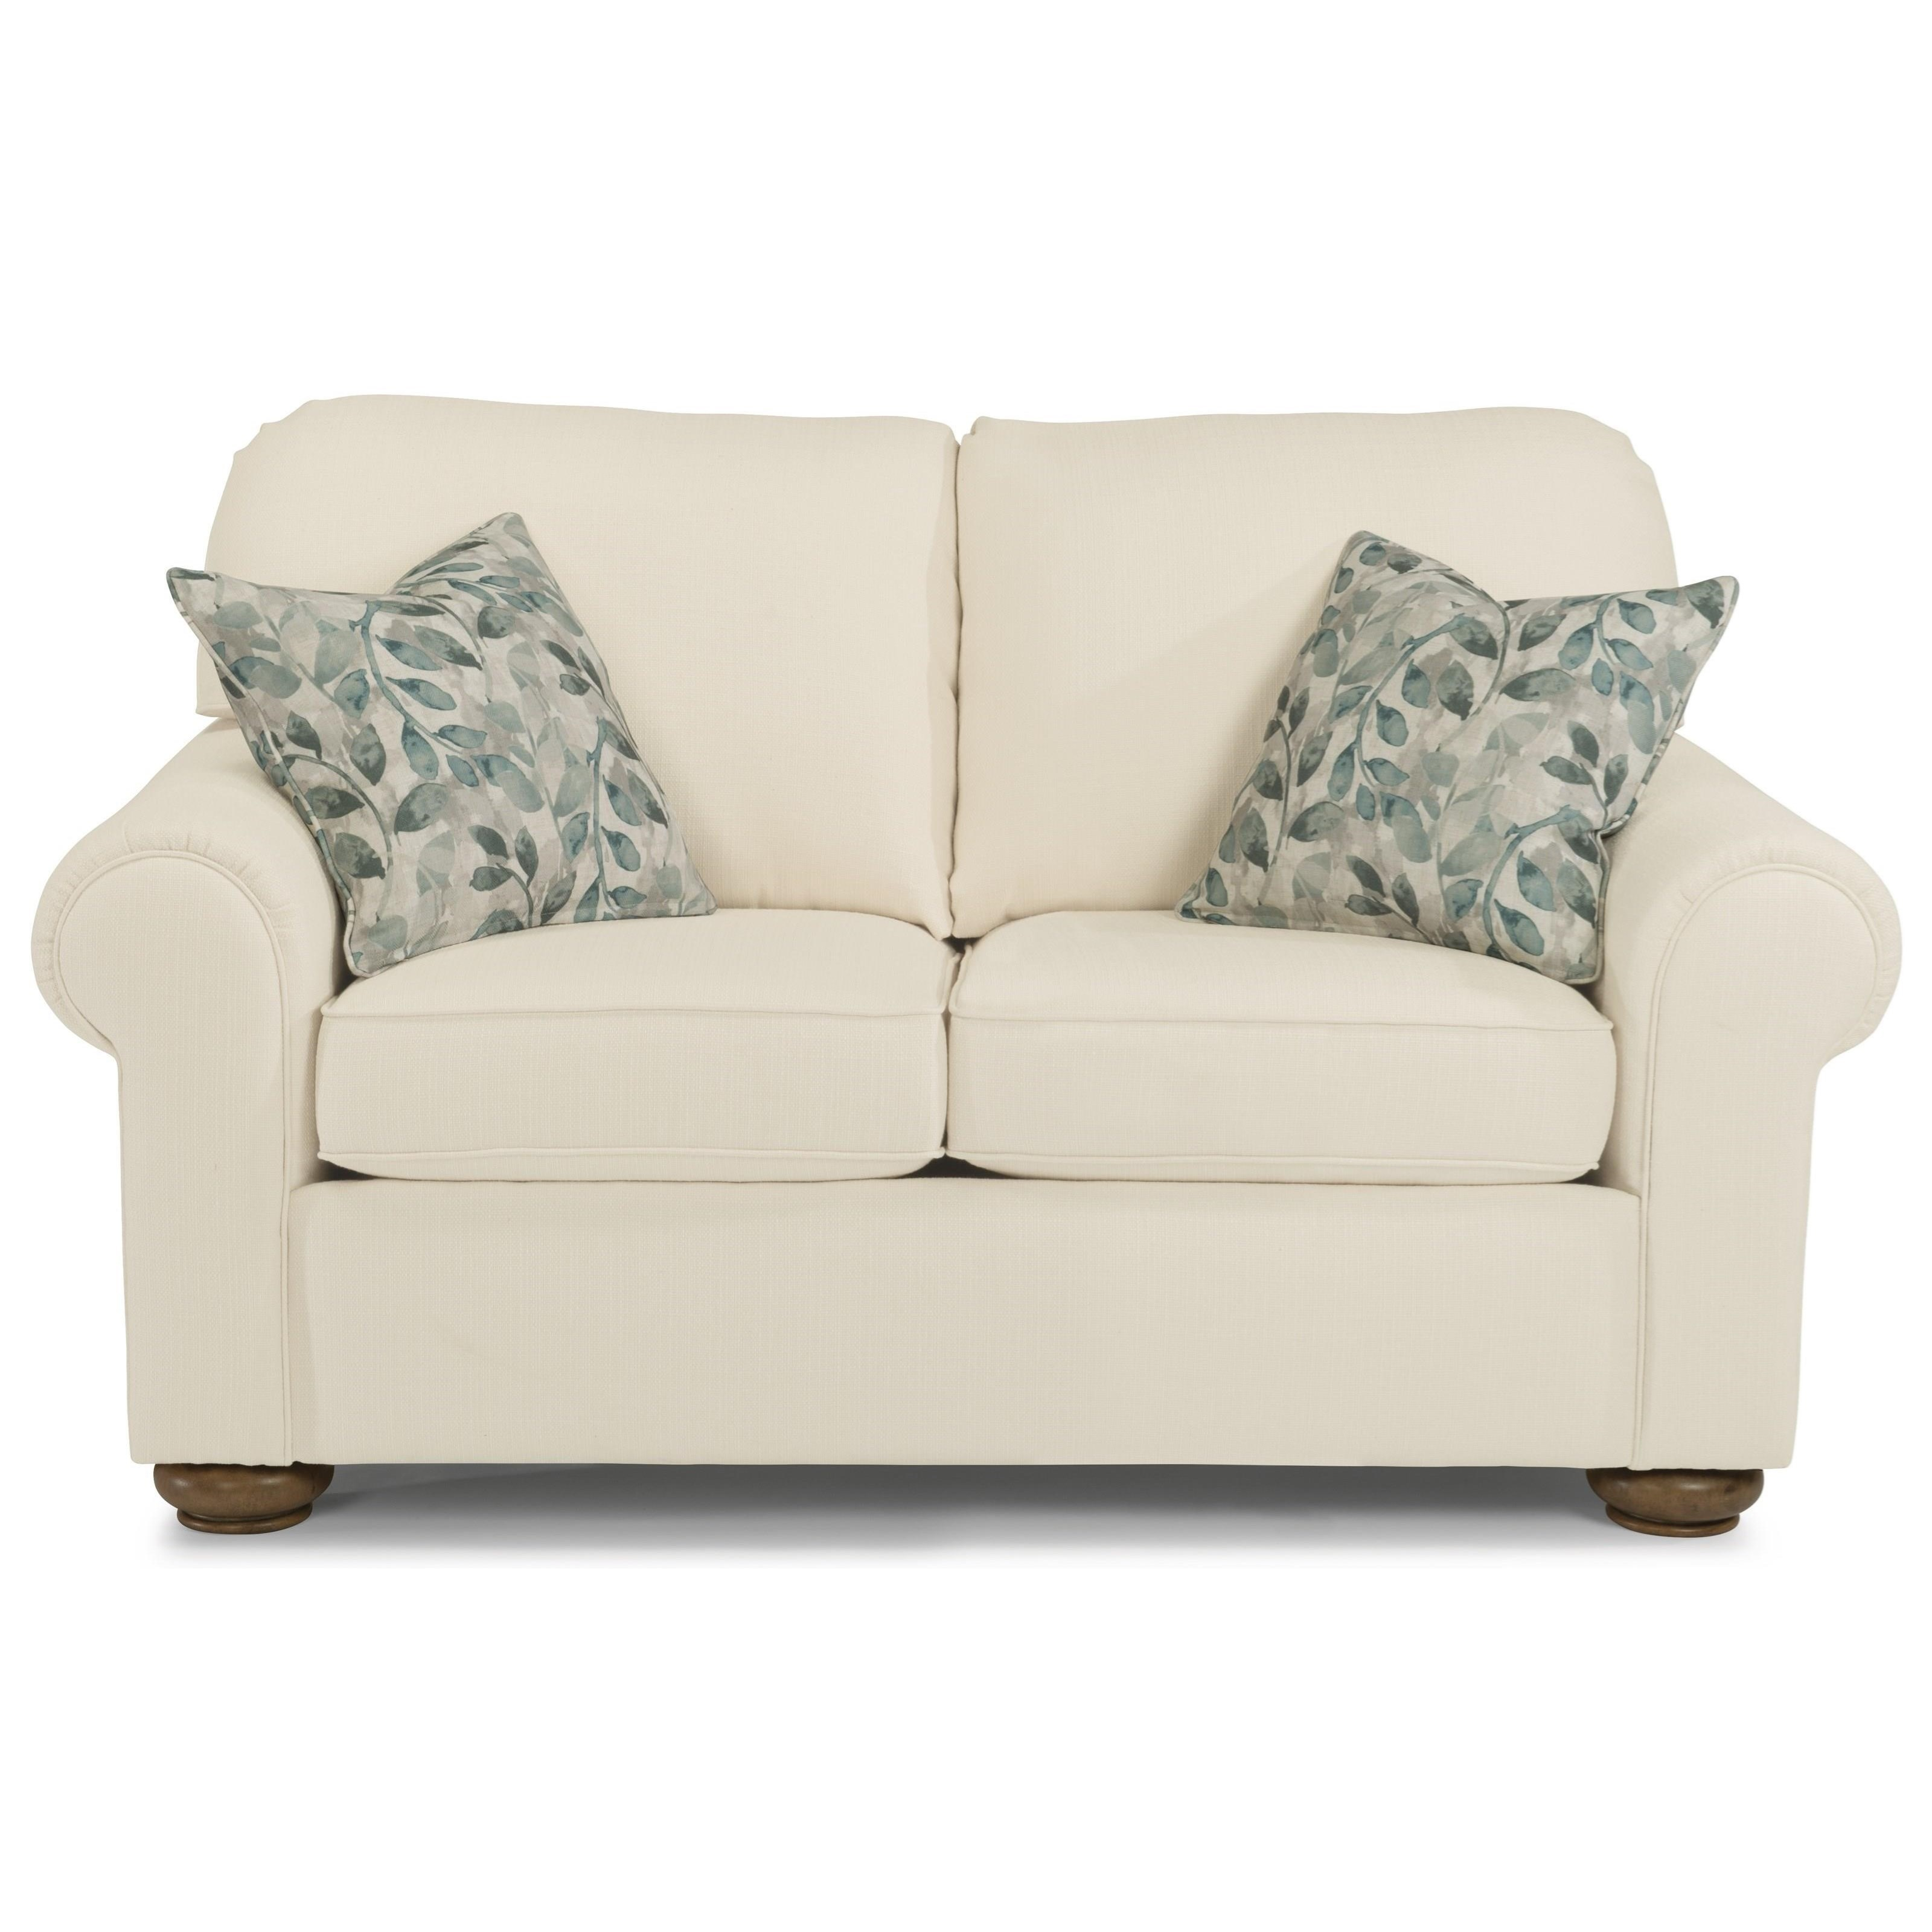 Primo Loveseat by Flexsteel at Crowley Furniture & Mattress